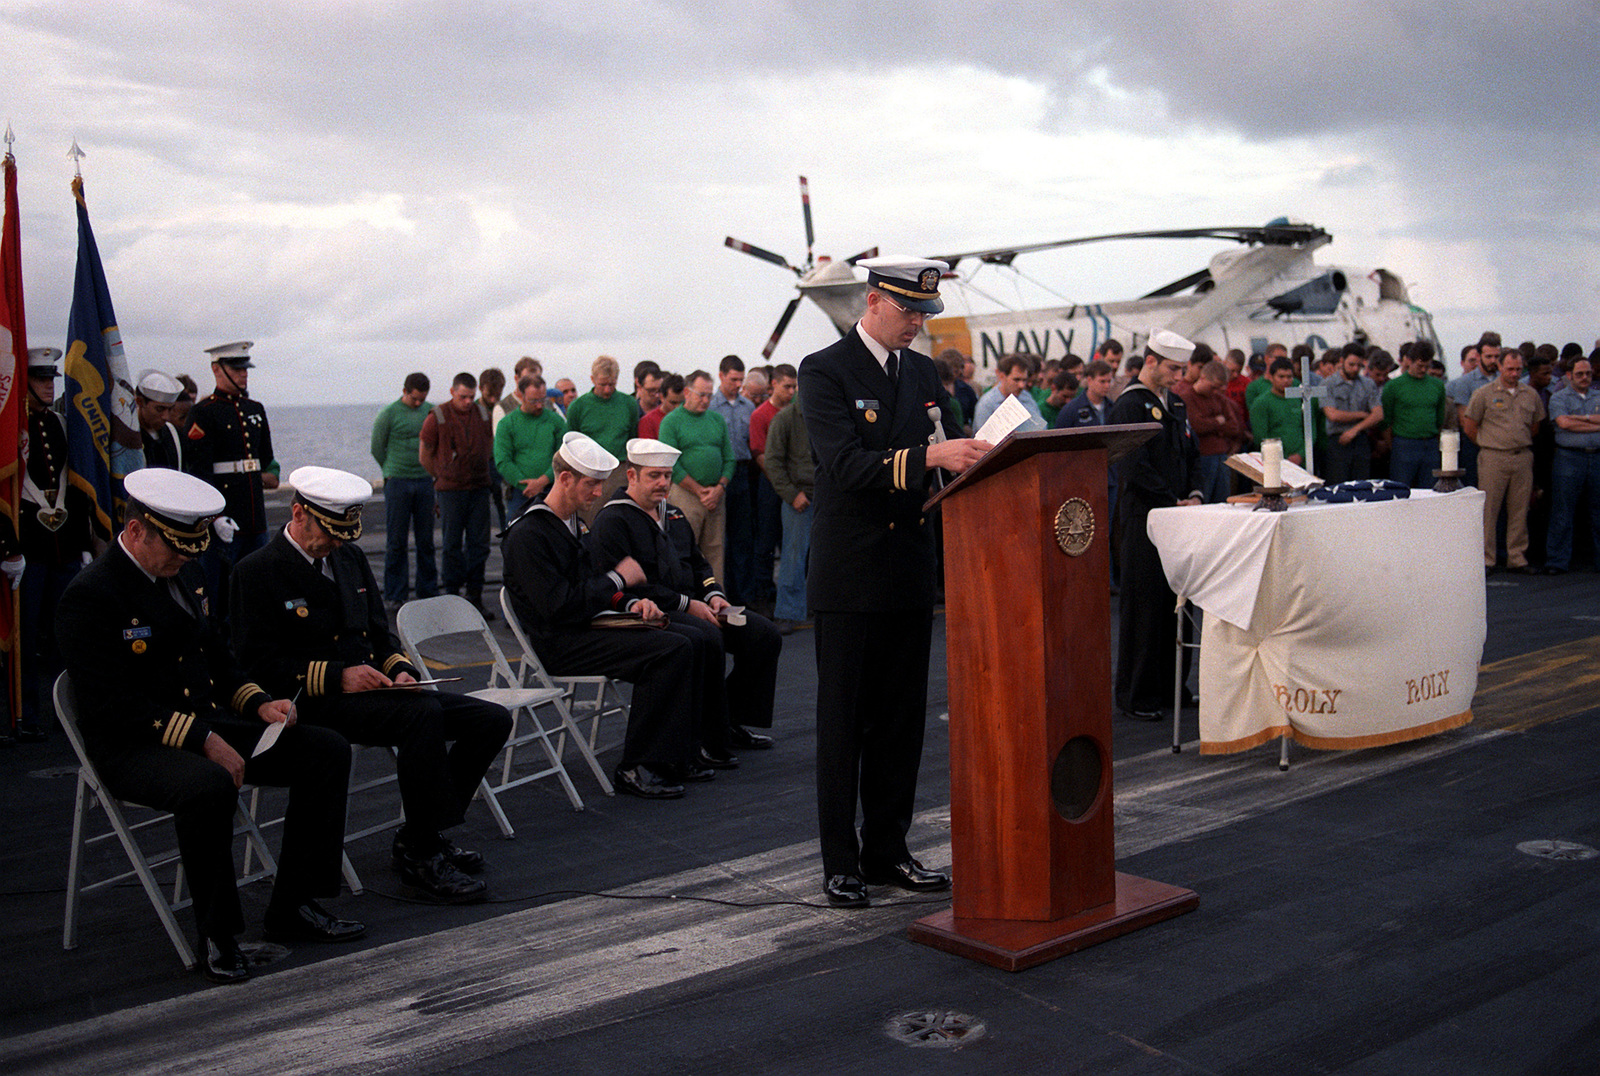 Chaplain (LT.) Paul F. Soderquist leads the crew of the nuclear-powered aircraft carrier USS DWIGHT D. EISENHOWER (CVN-69) in the invocation during a memorial service for Aviation Machinist's Mate 3rd Class Charles D. Elliot. Elliot was lost at sea in heavy weather while serving aboard the Eisenhower